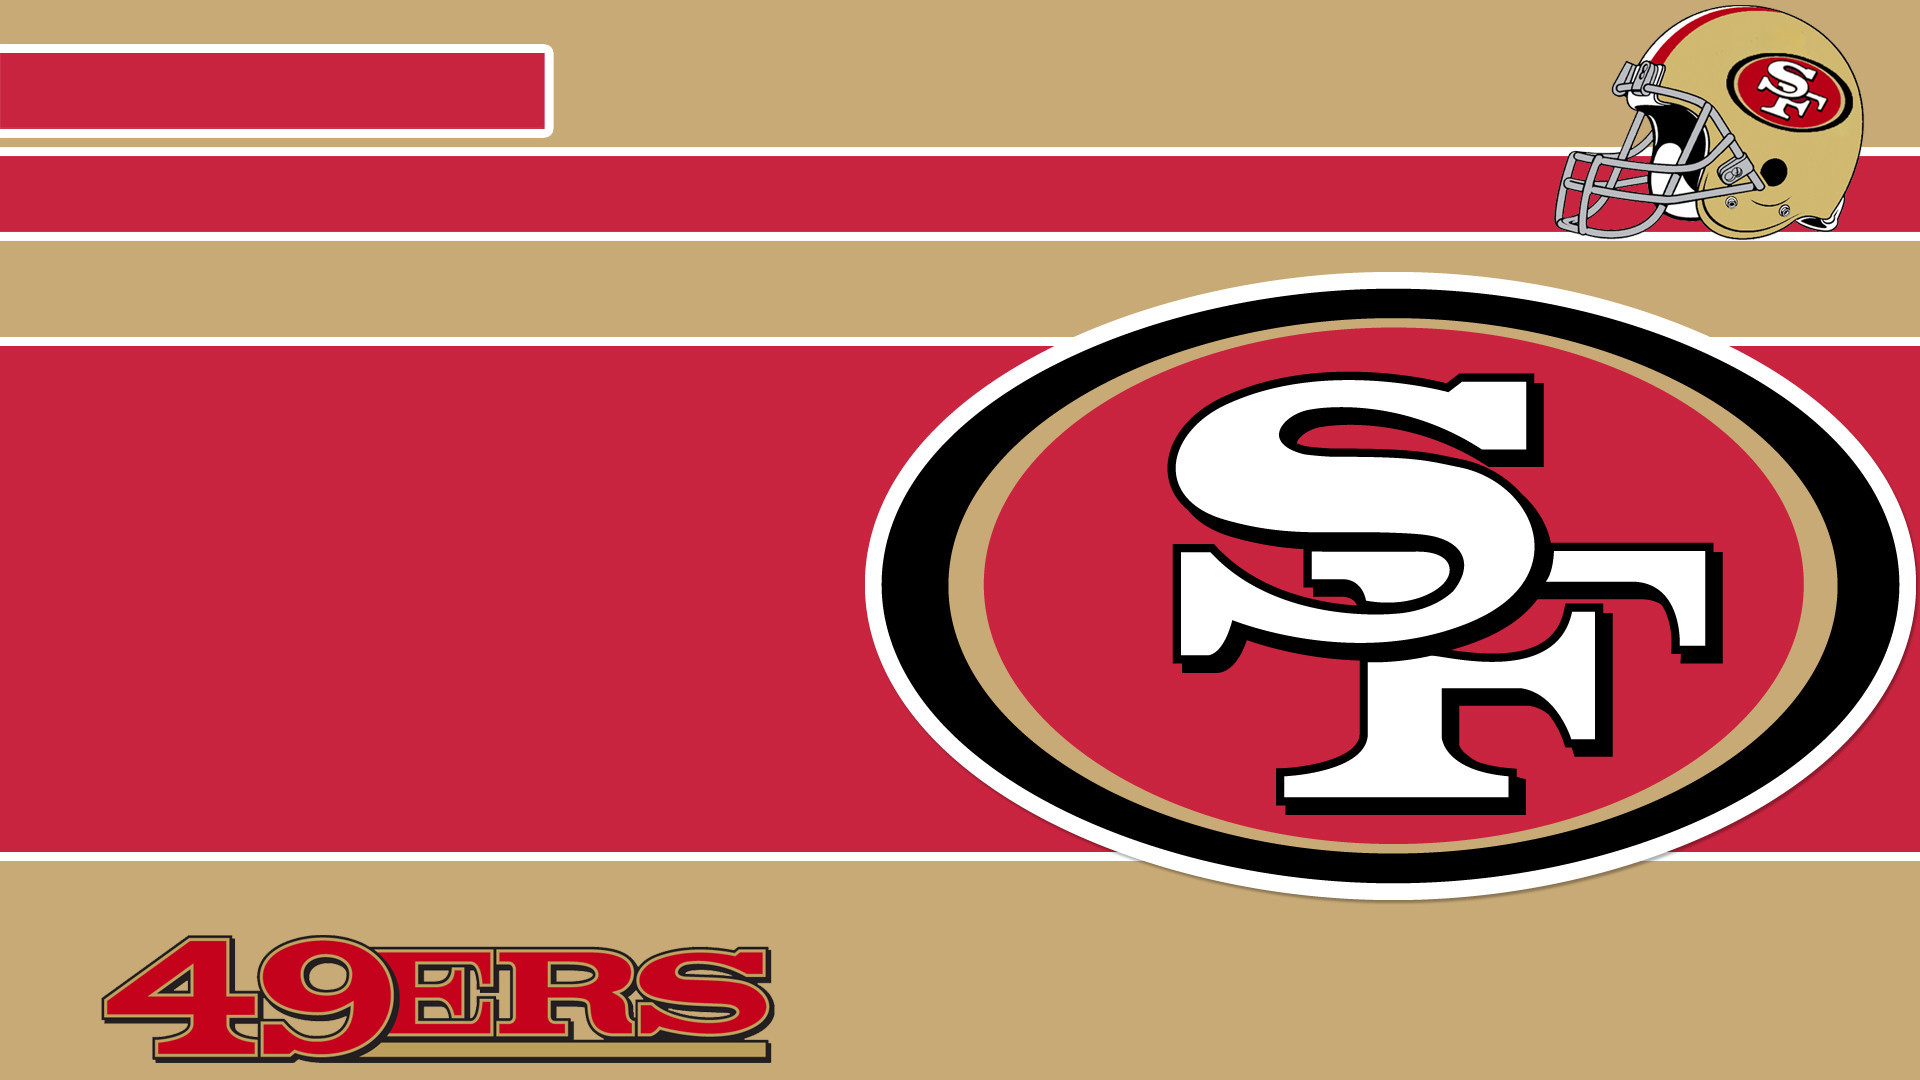 1920x1080 49ers hd wallpaper photo - 1